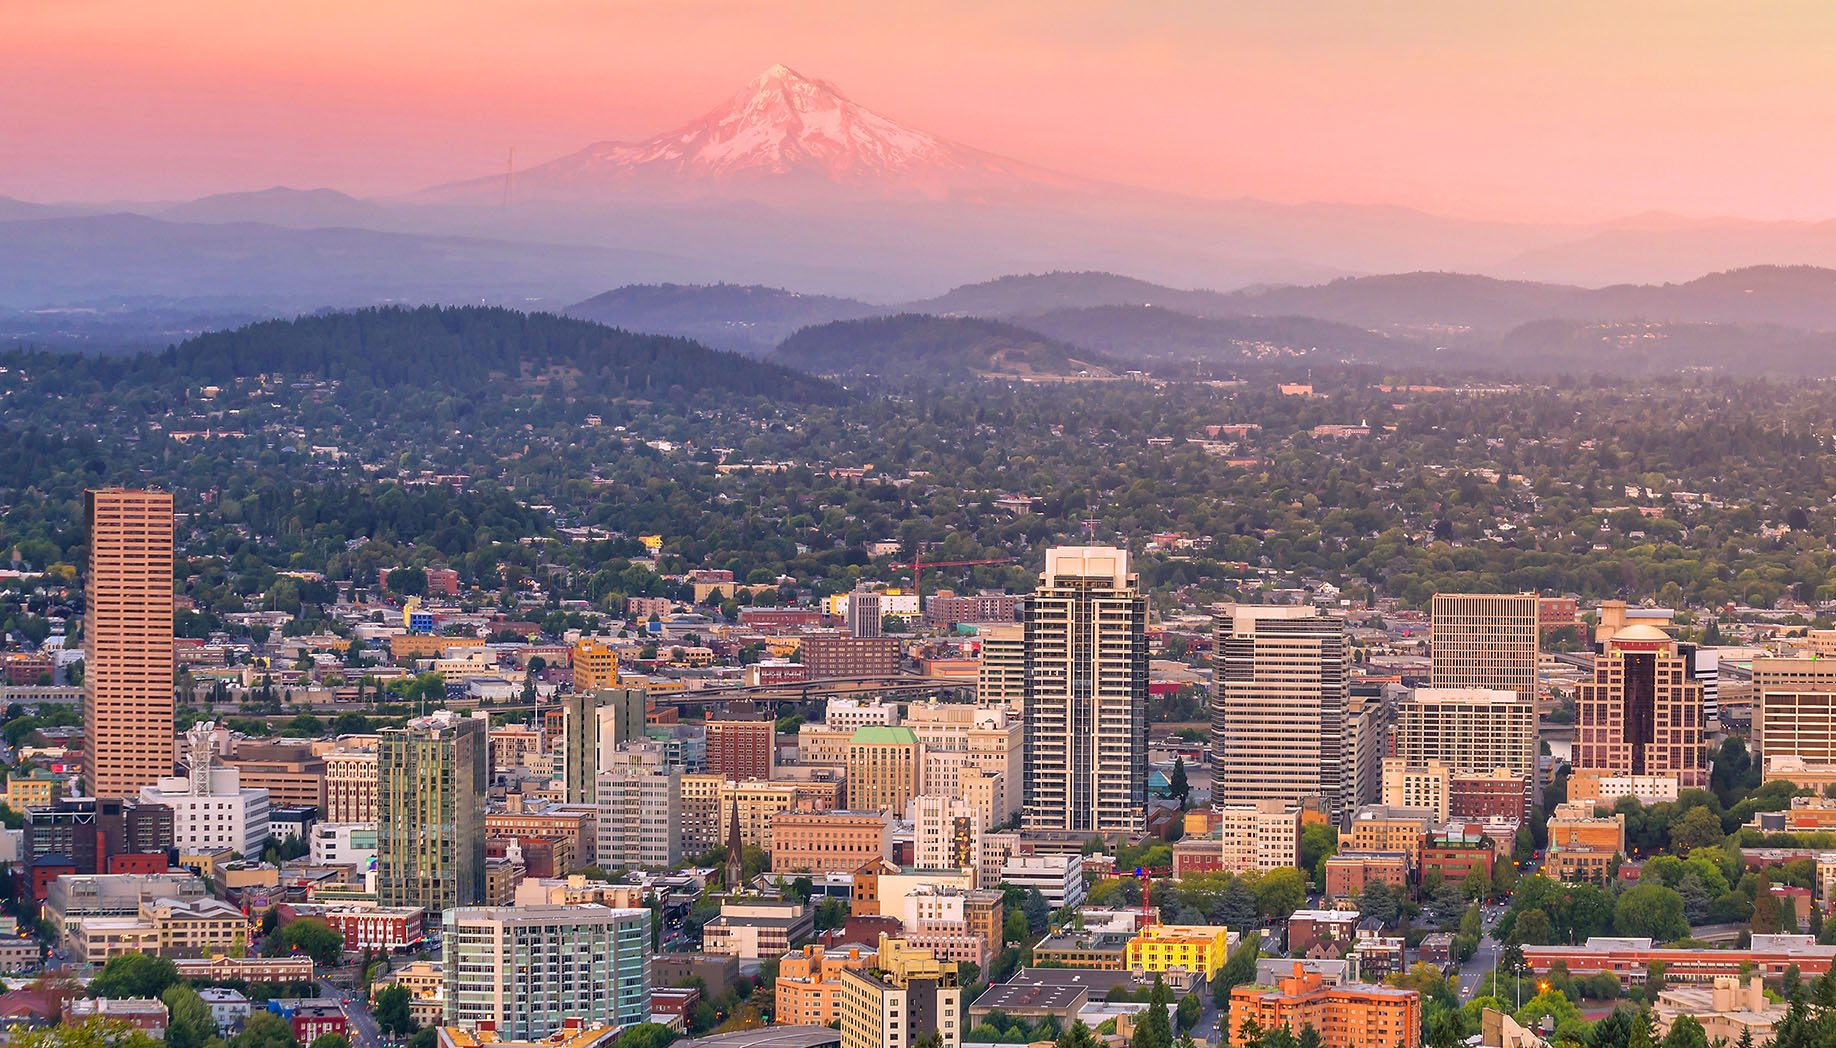 How to Find and Land Amazing Jobs in Portland